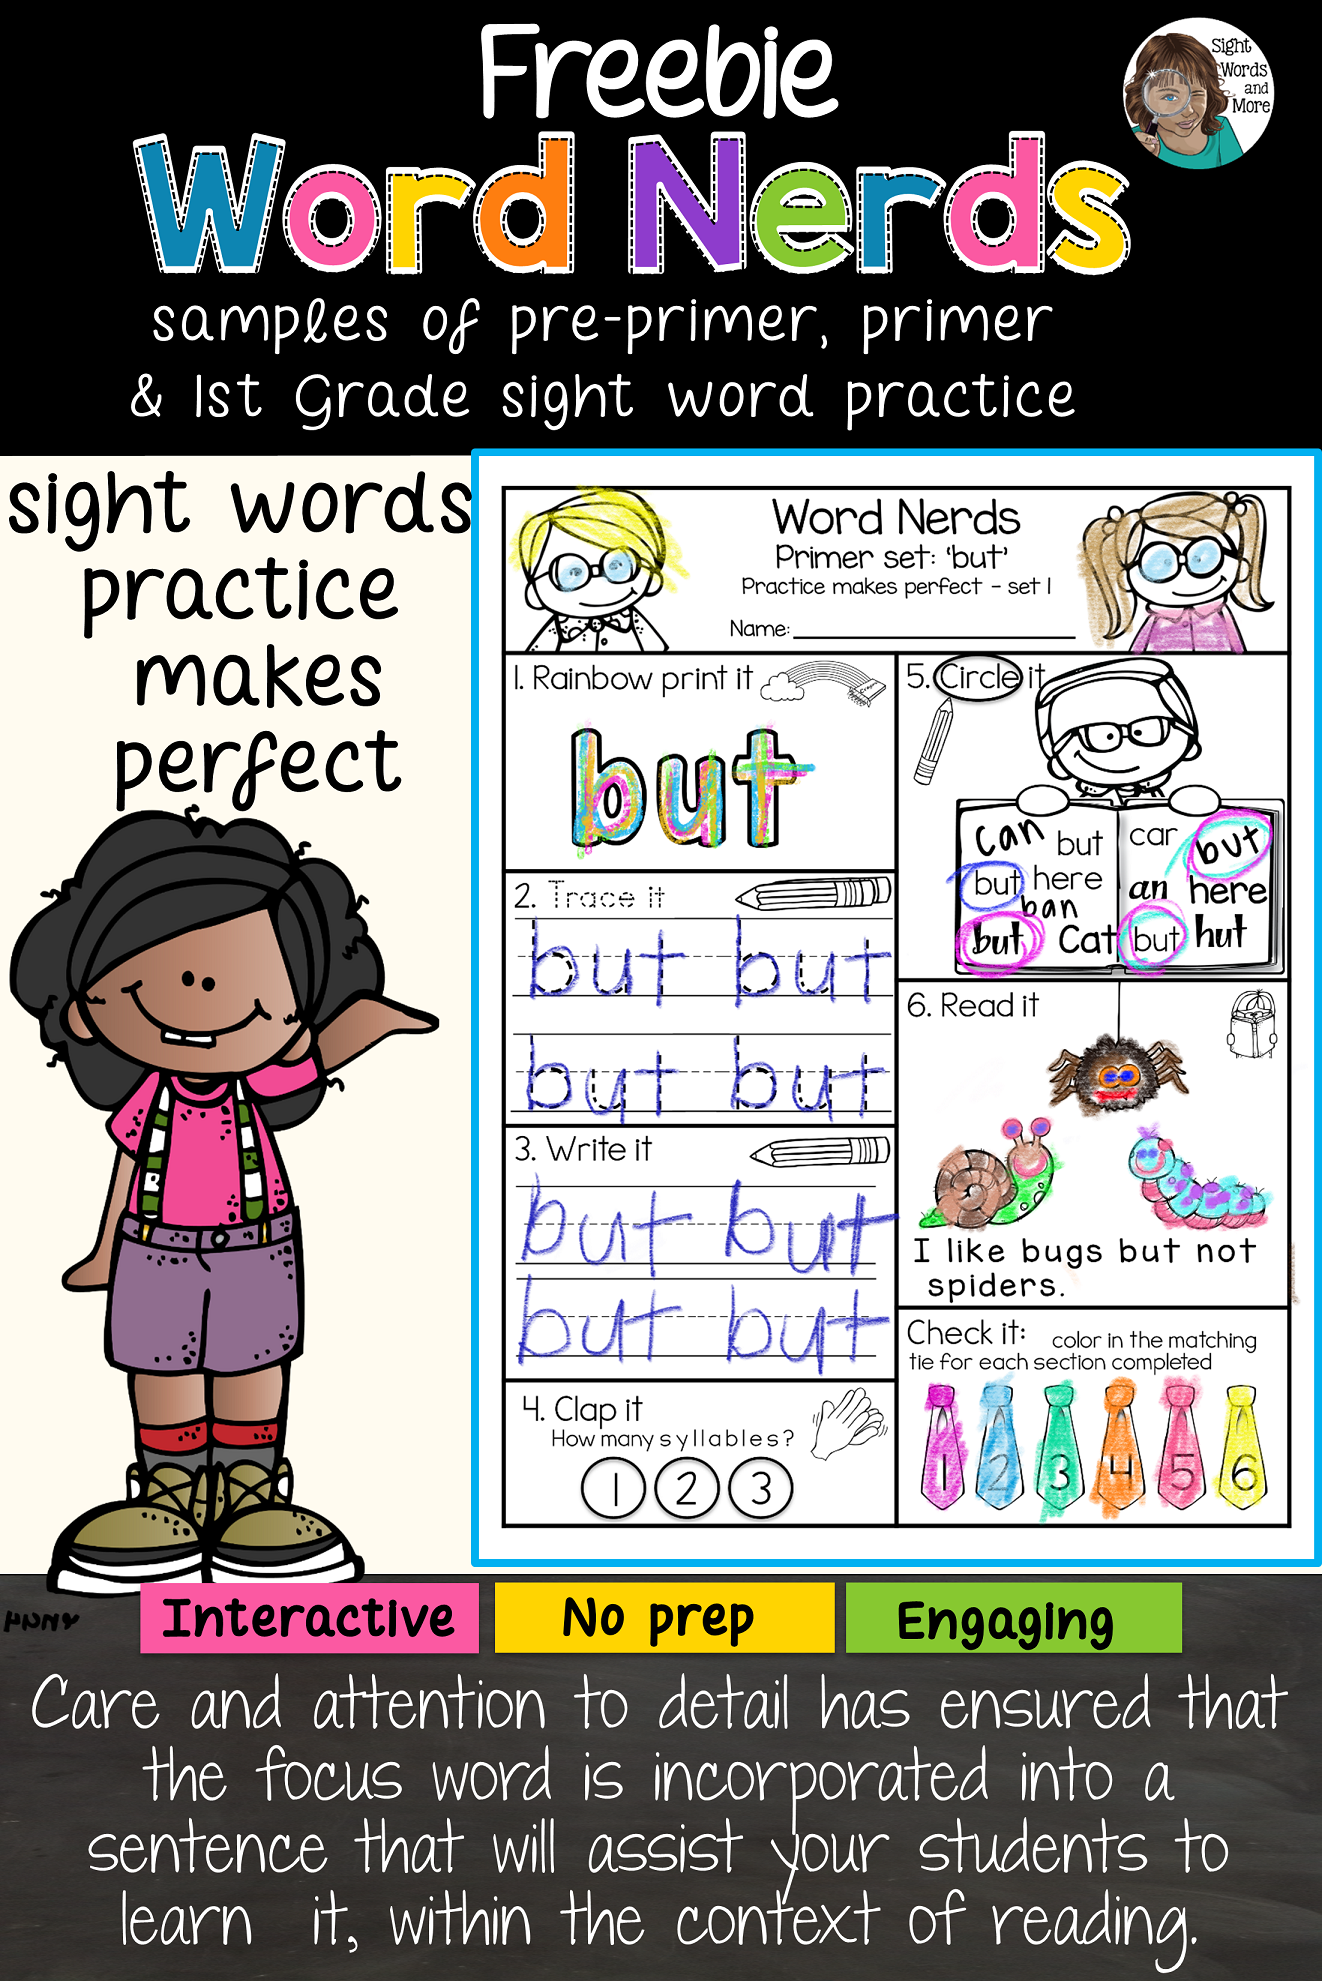 Sight Words From The Word Nerd Series Freebie Sight Words Word Nerd Sight Word Practice [ 1981 x 1322 Pixel ]